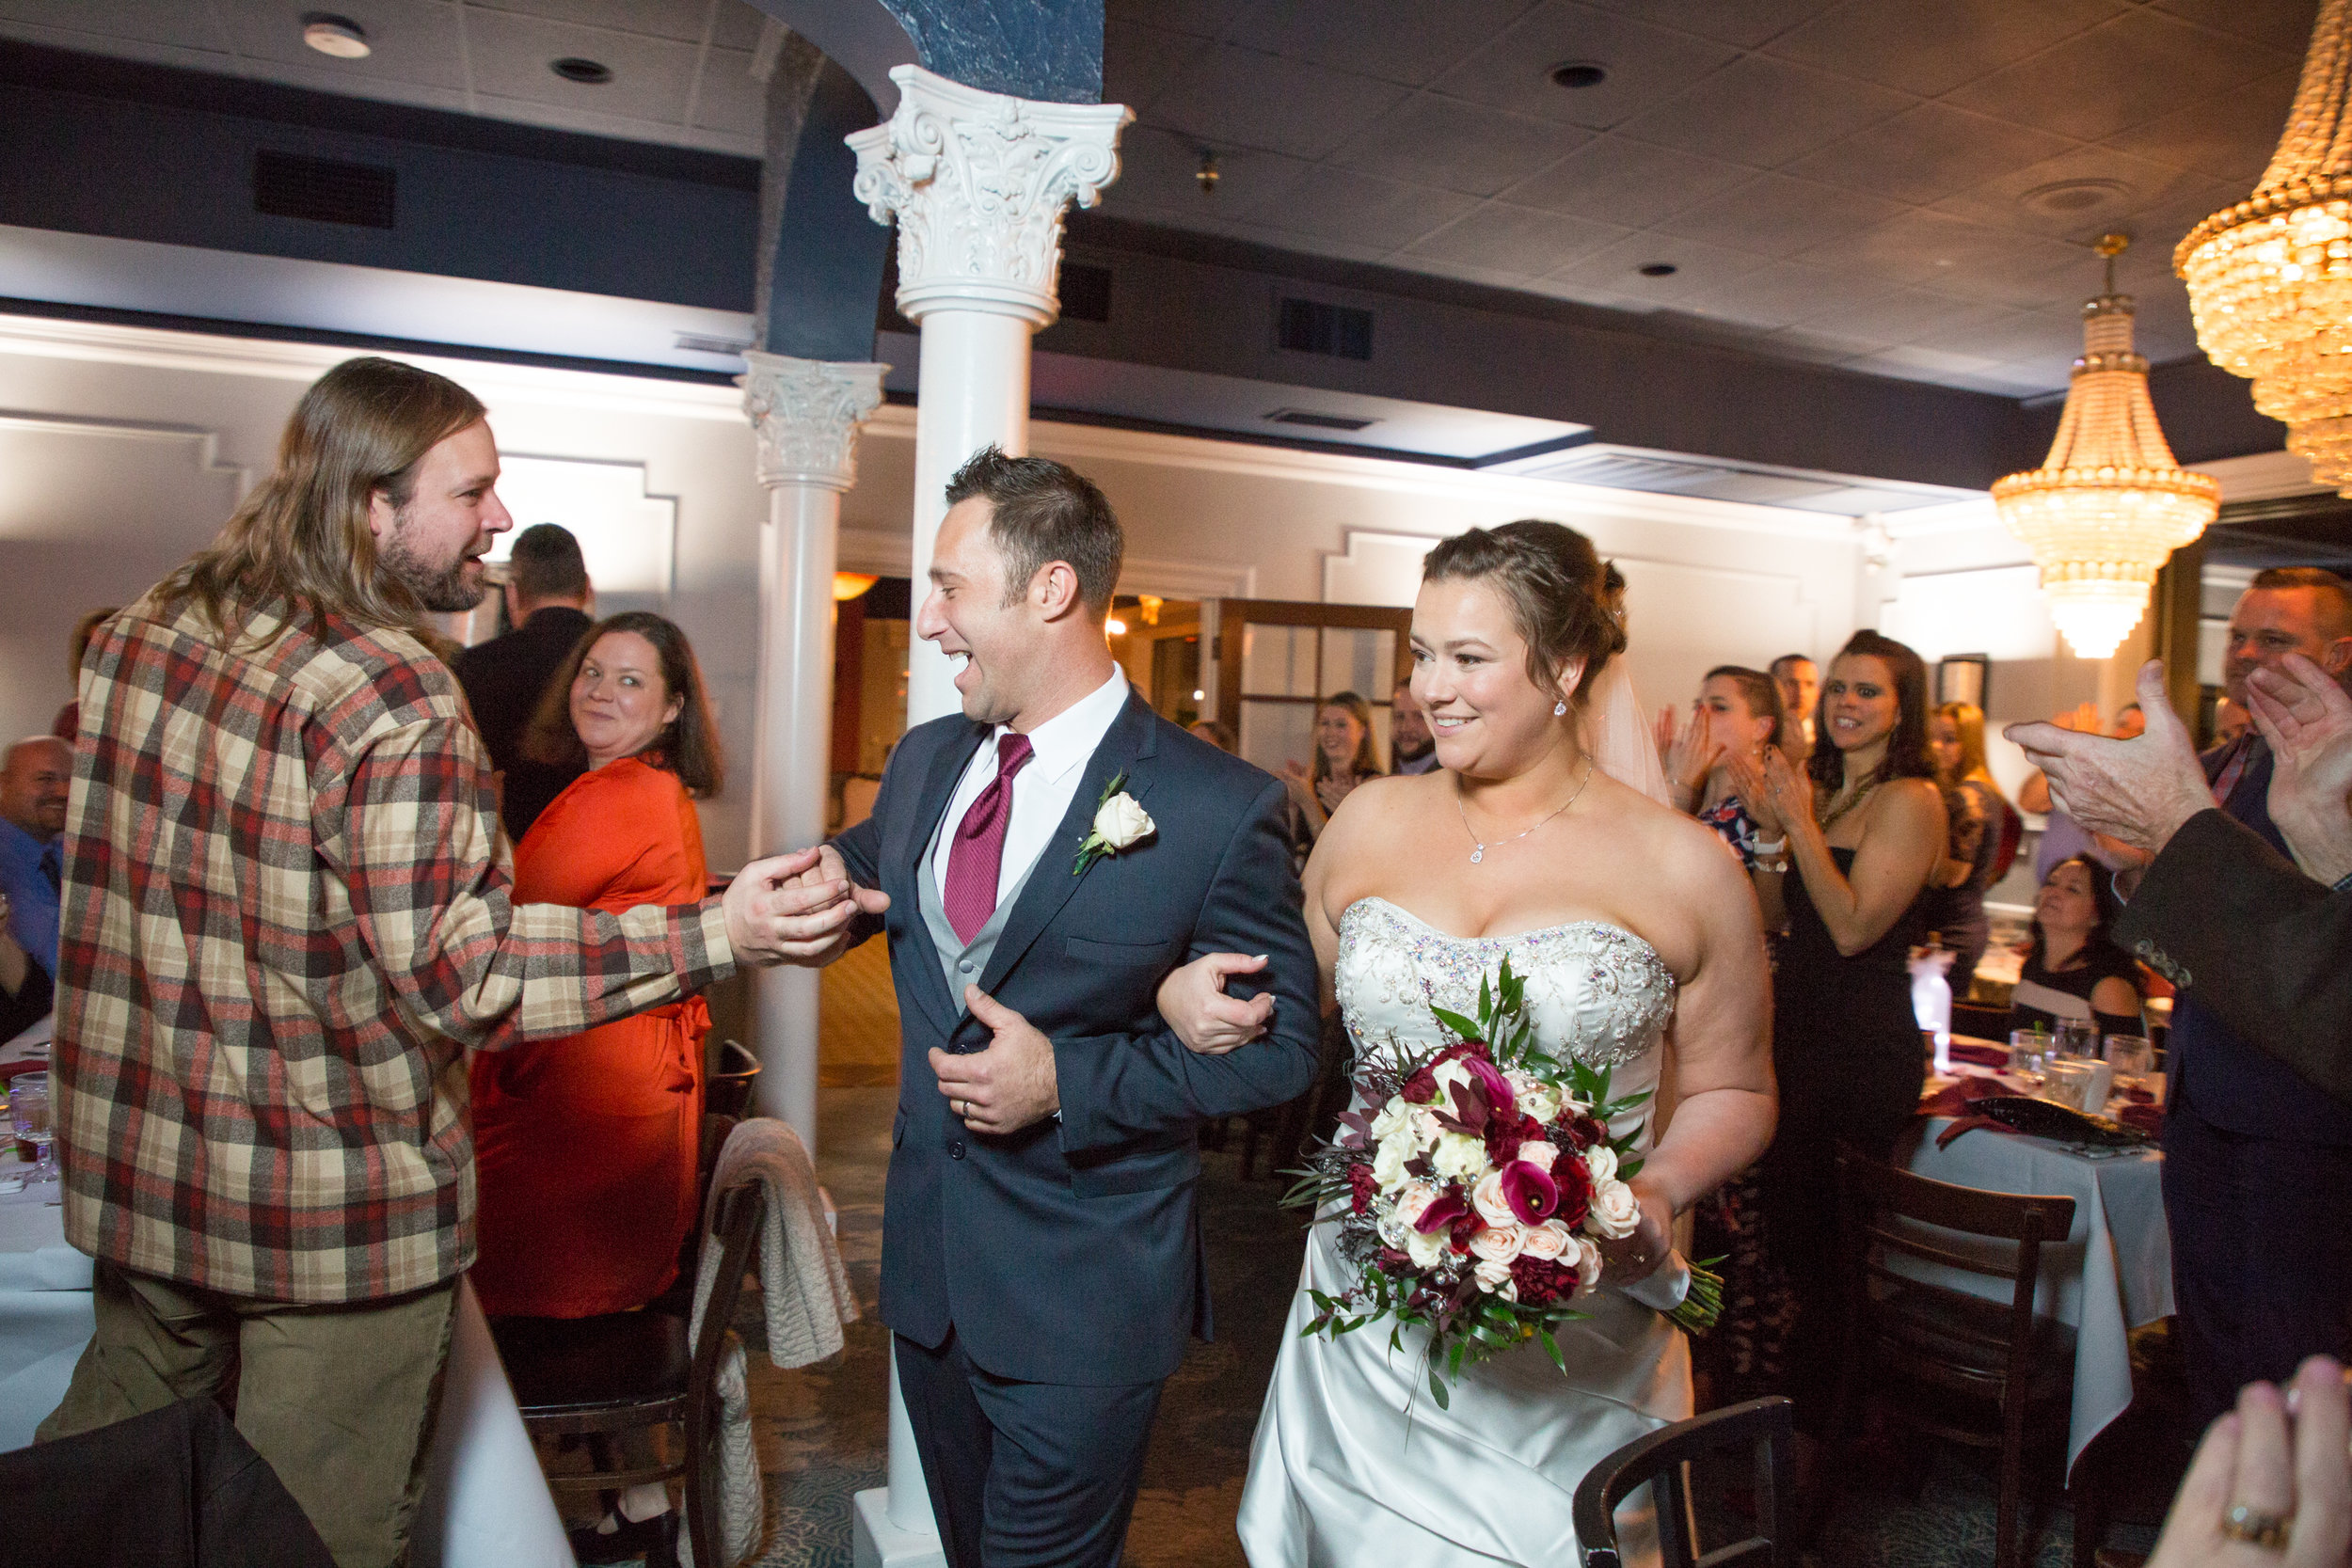 Jenna and Bill enter the reception hall during introductions during the reception on their wedding day in OC, MD.